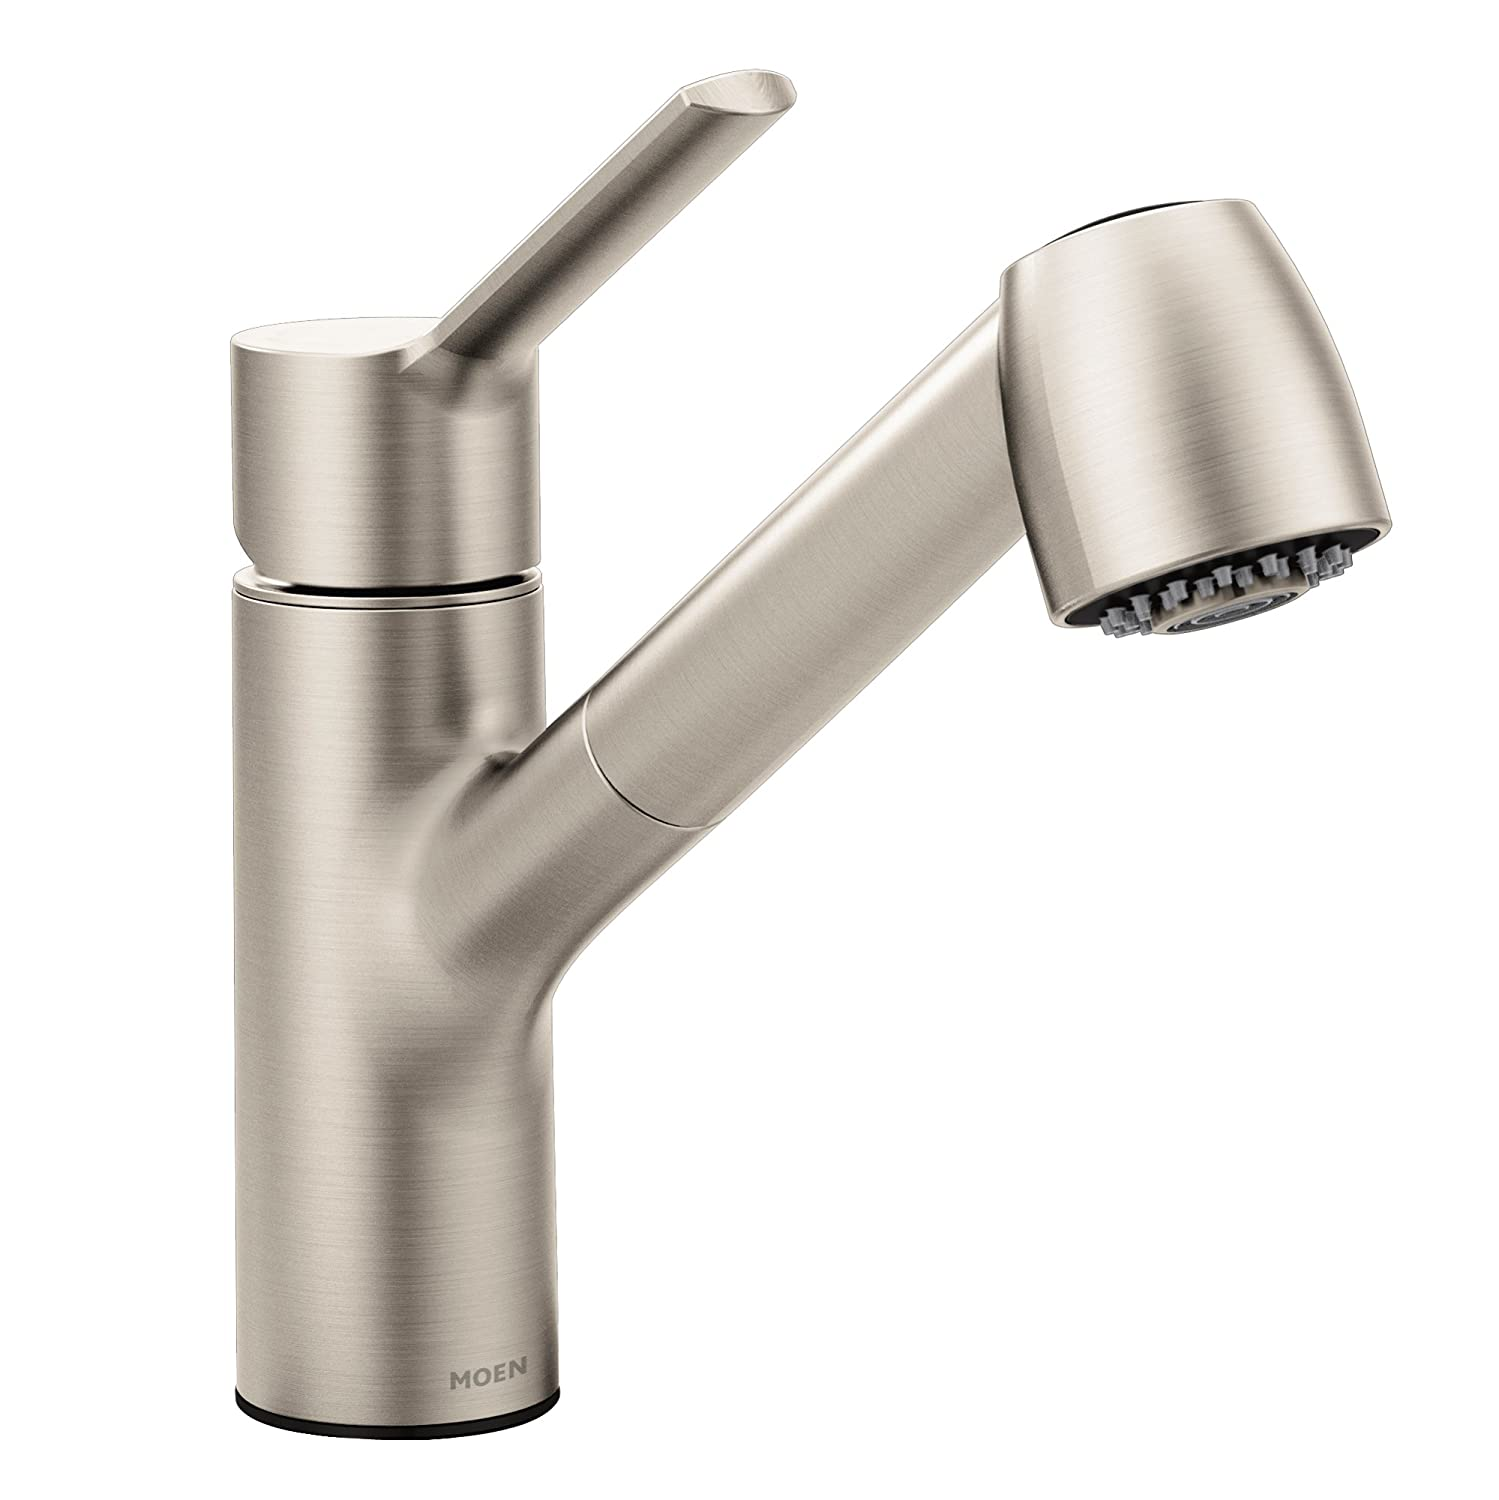 Moen 7585SRS Method One-Handle Pullout Kitchen Faucet, Spot Resist Stainless